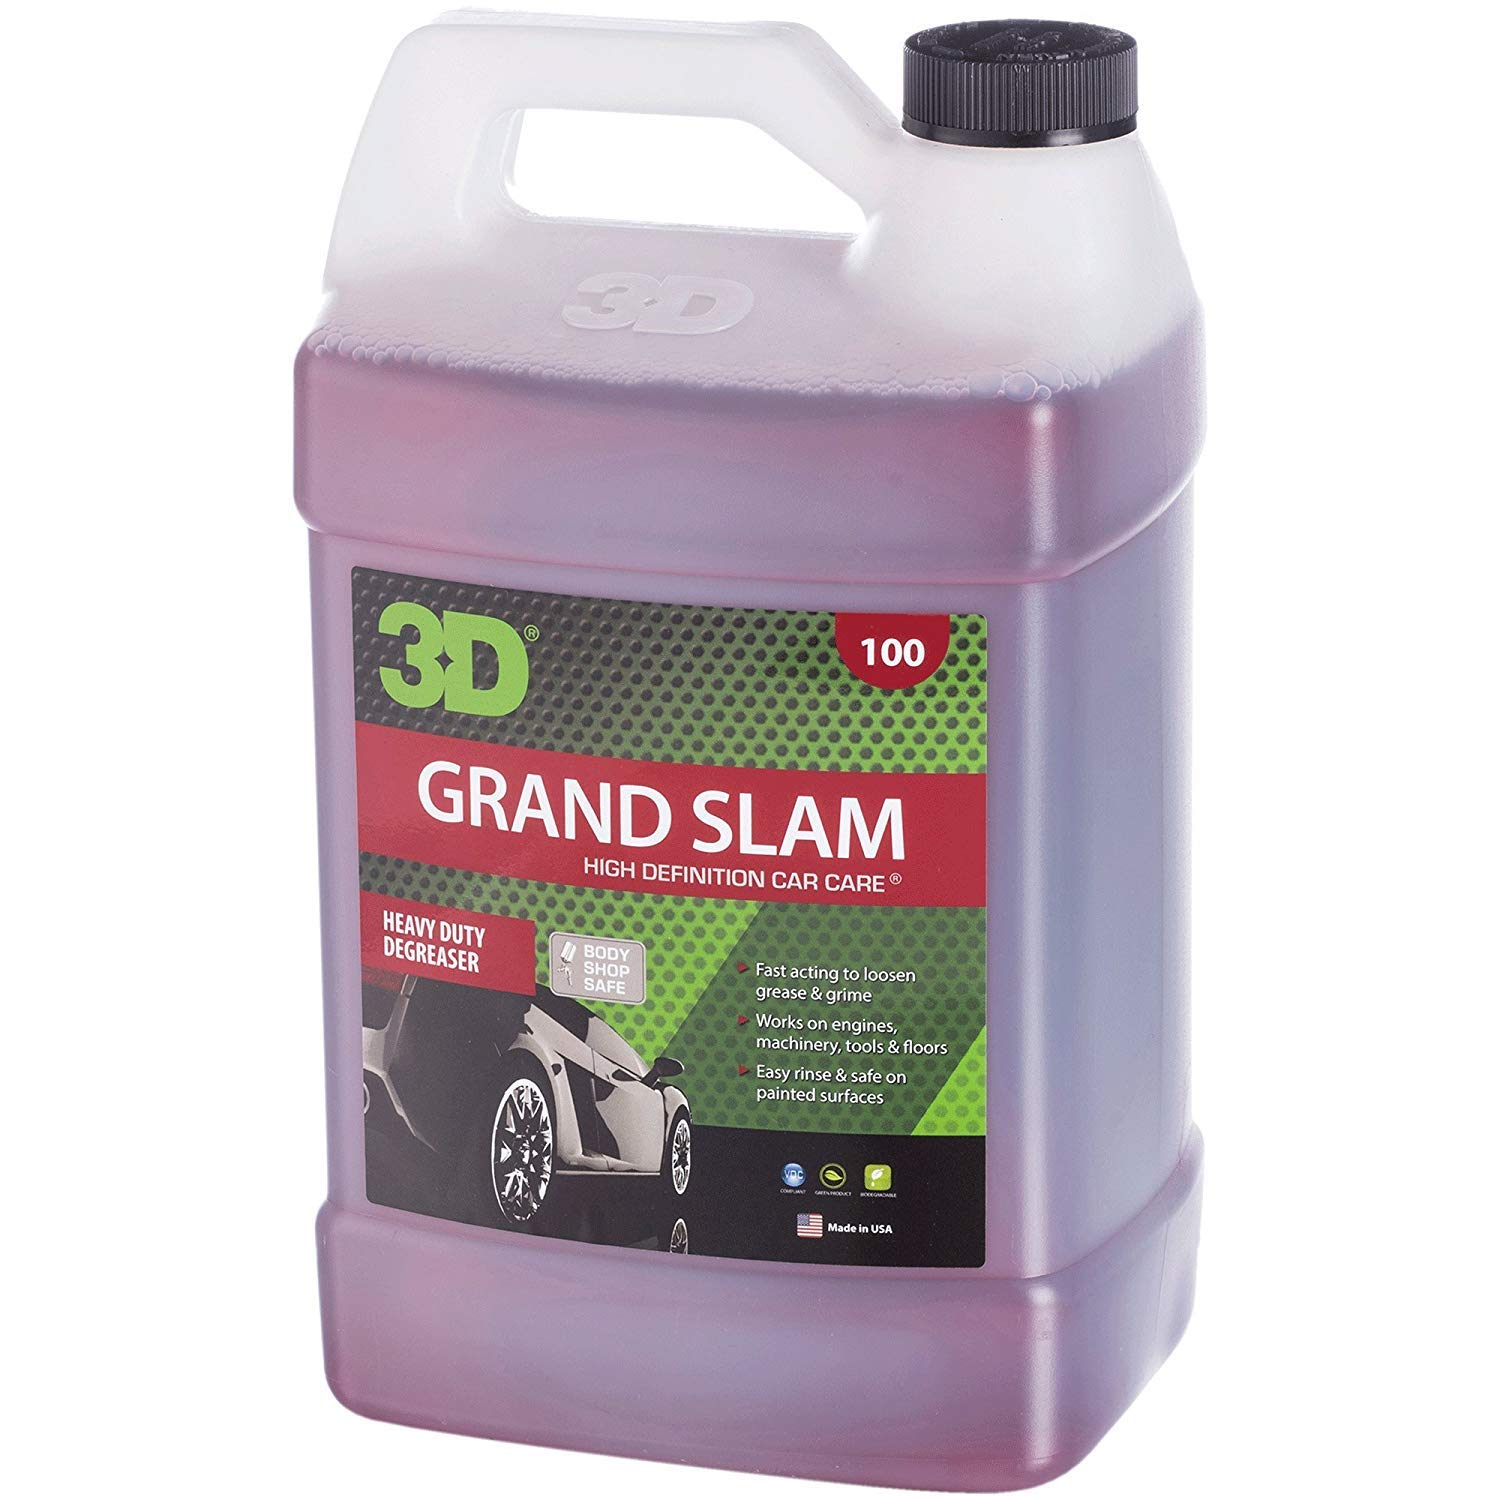 3D Auto Detailing Products 3D Grand Slam Engine Degreaser